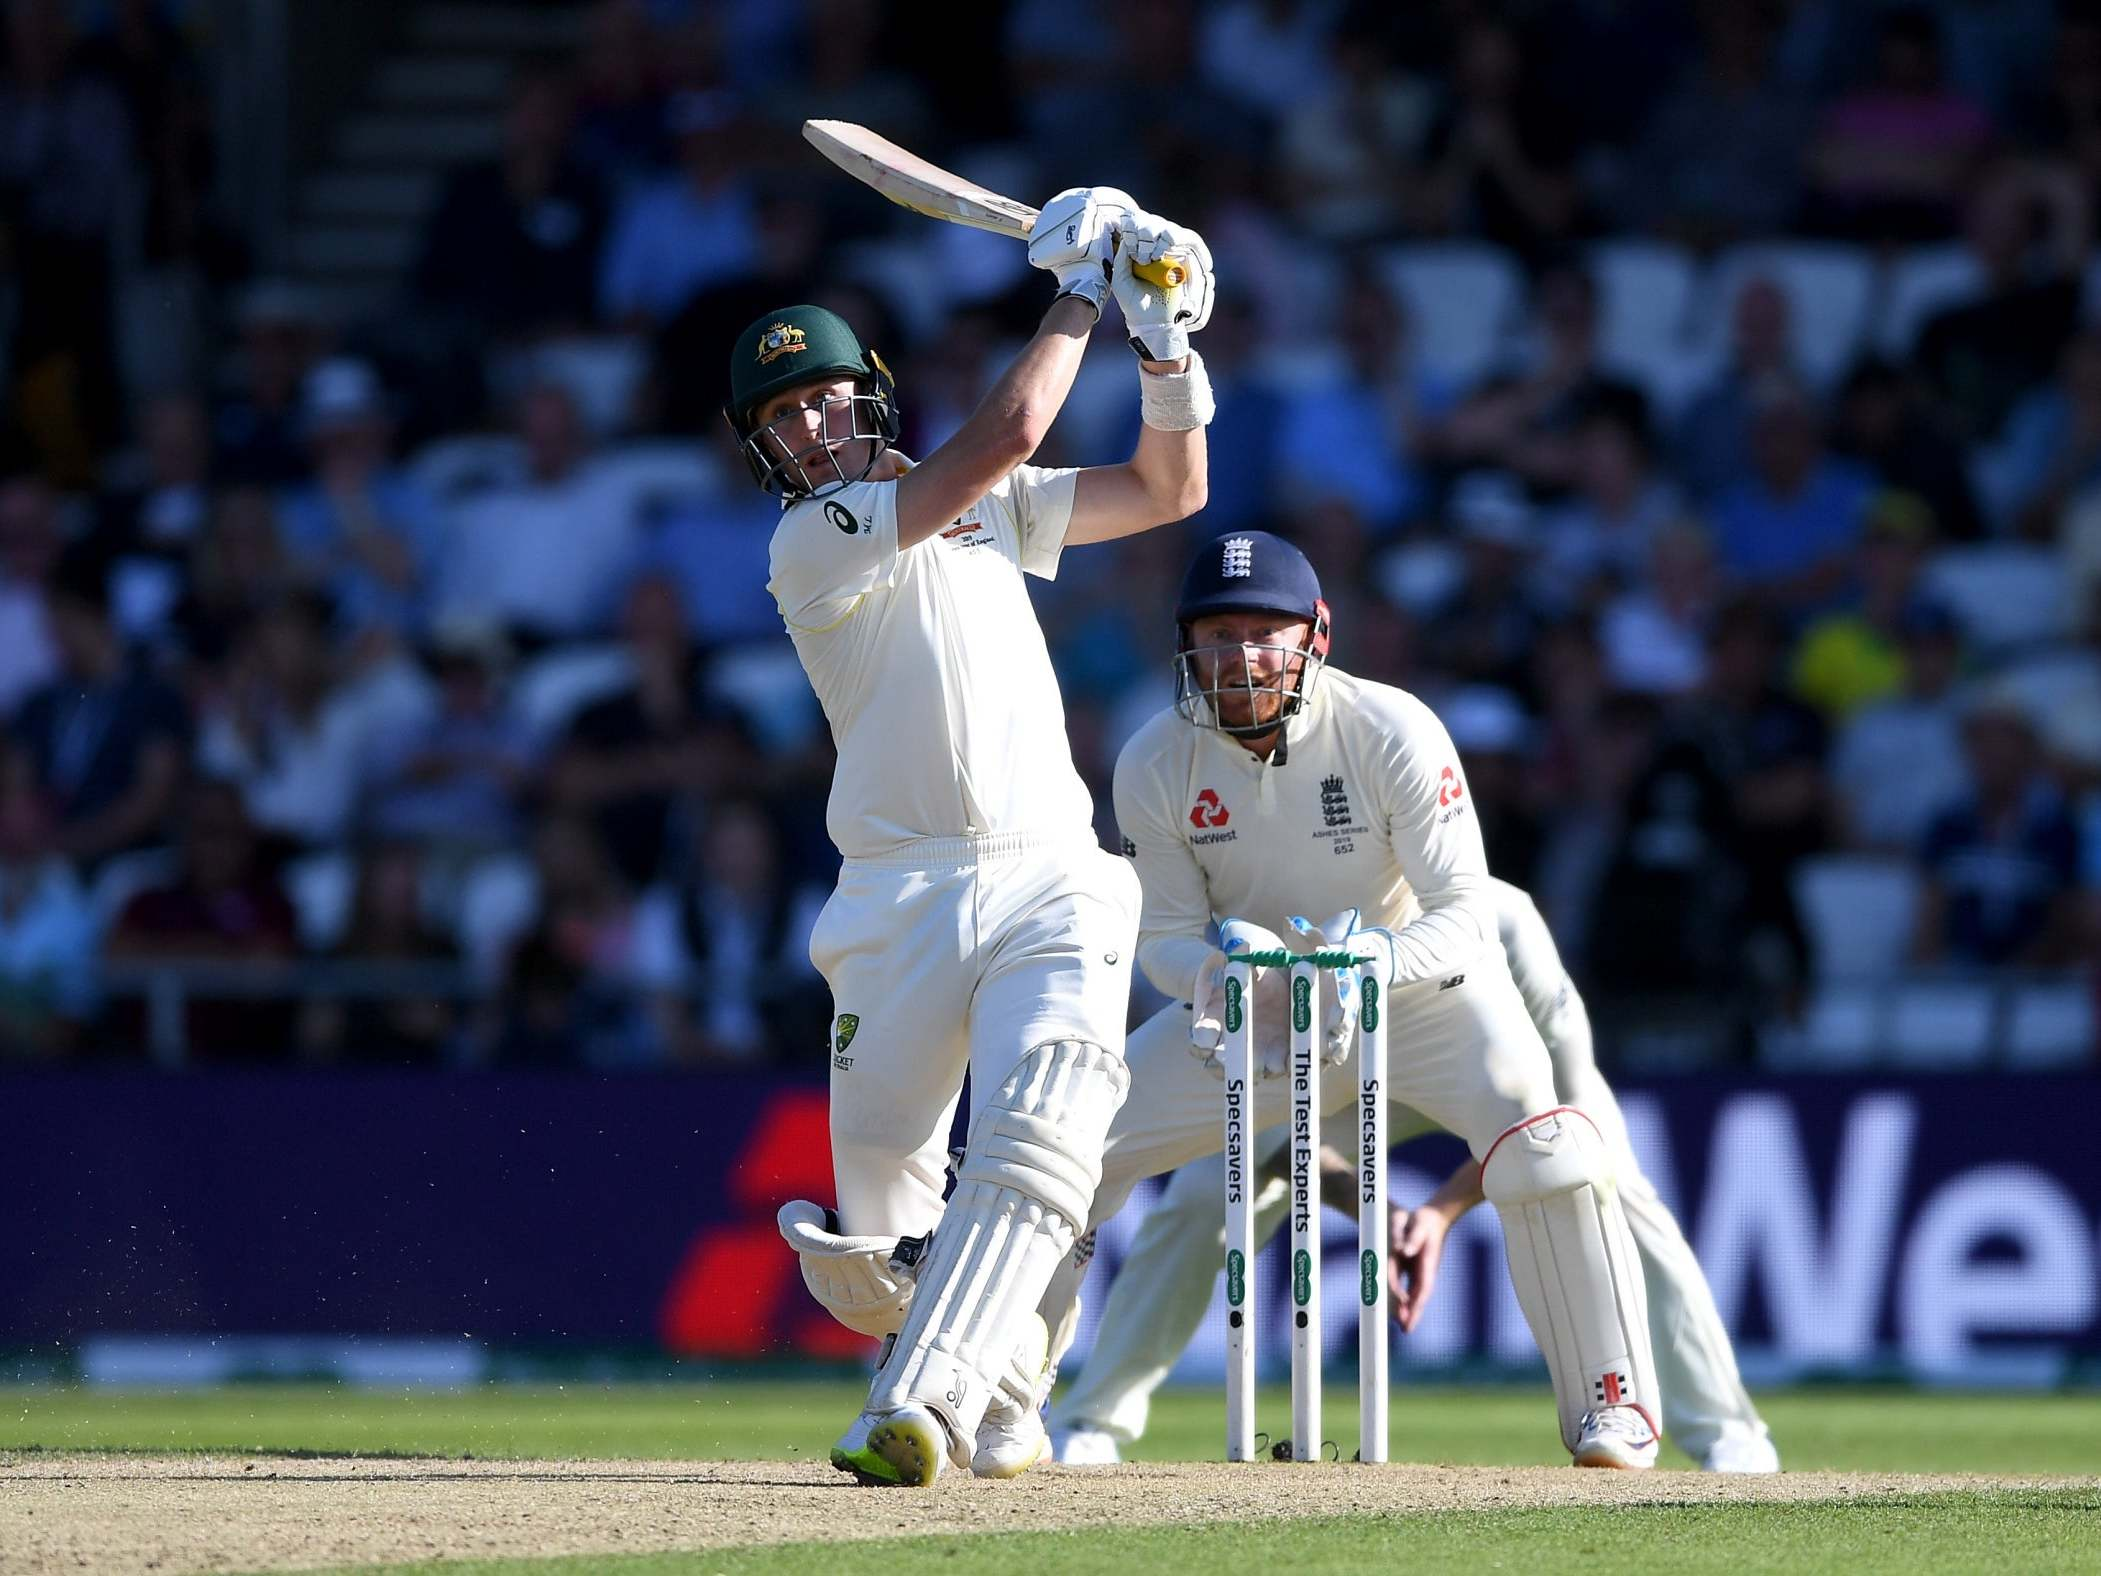 Ashes 2019: Australia build sizeable lead after sorry England sink without a trace at Headingley